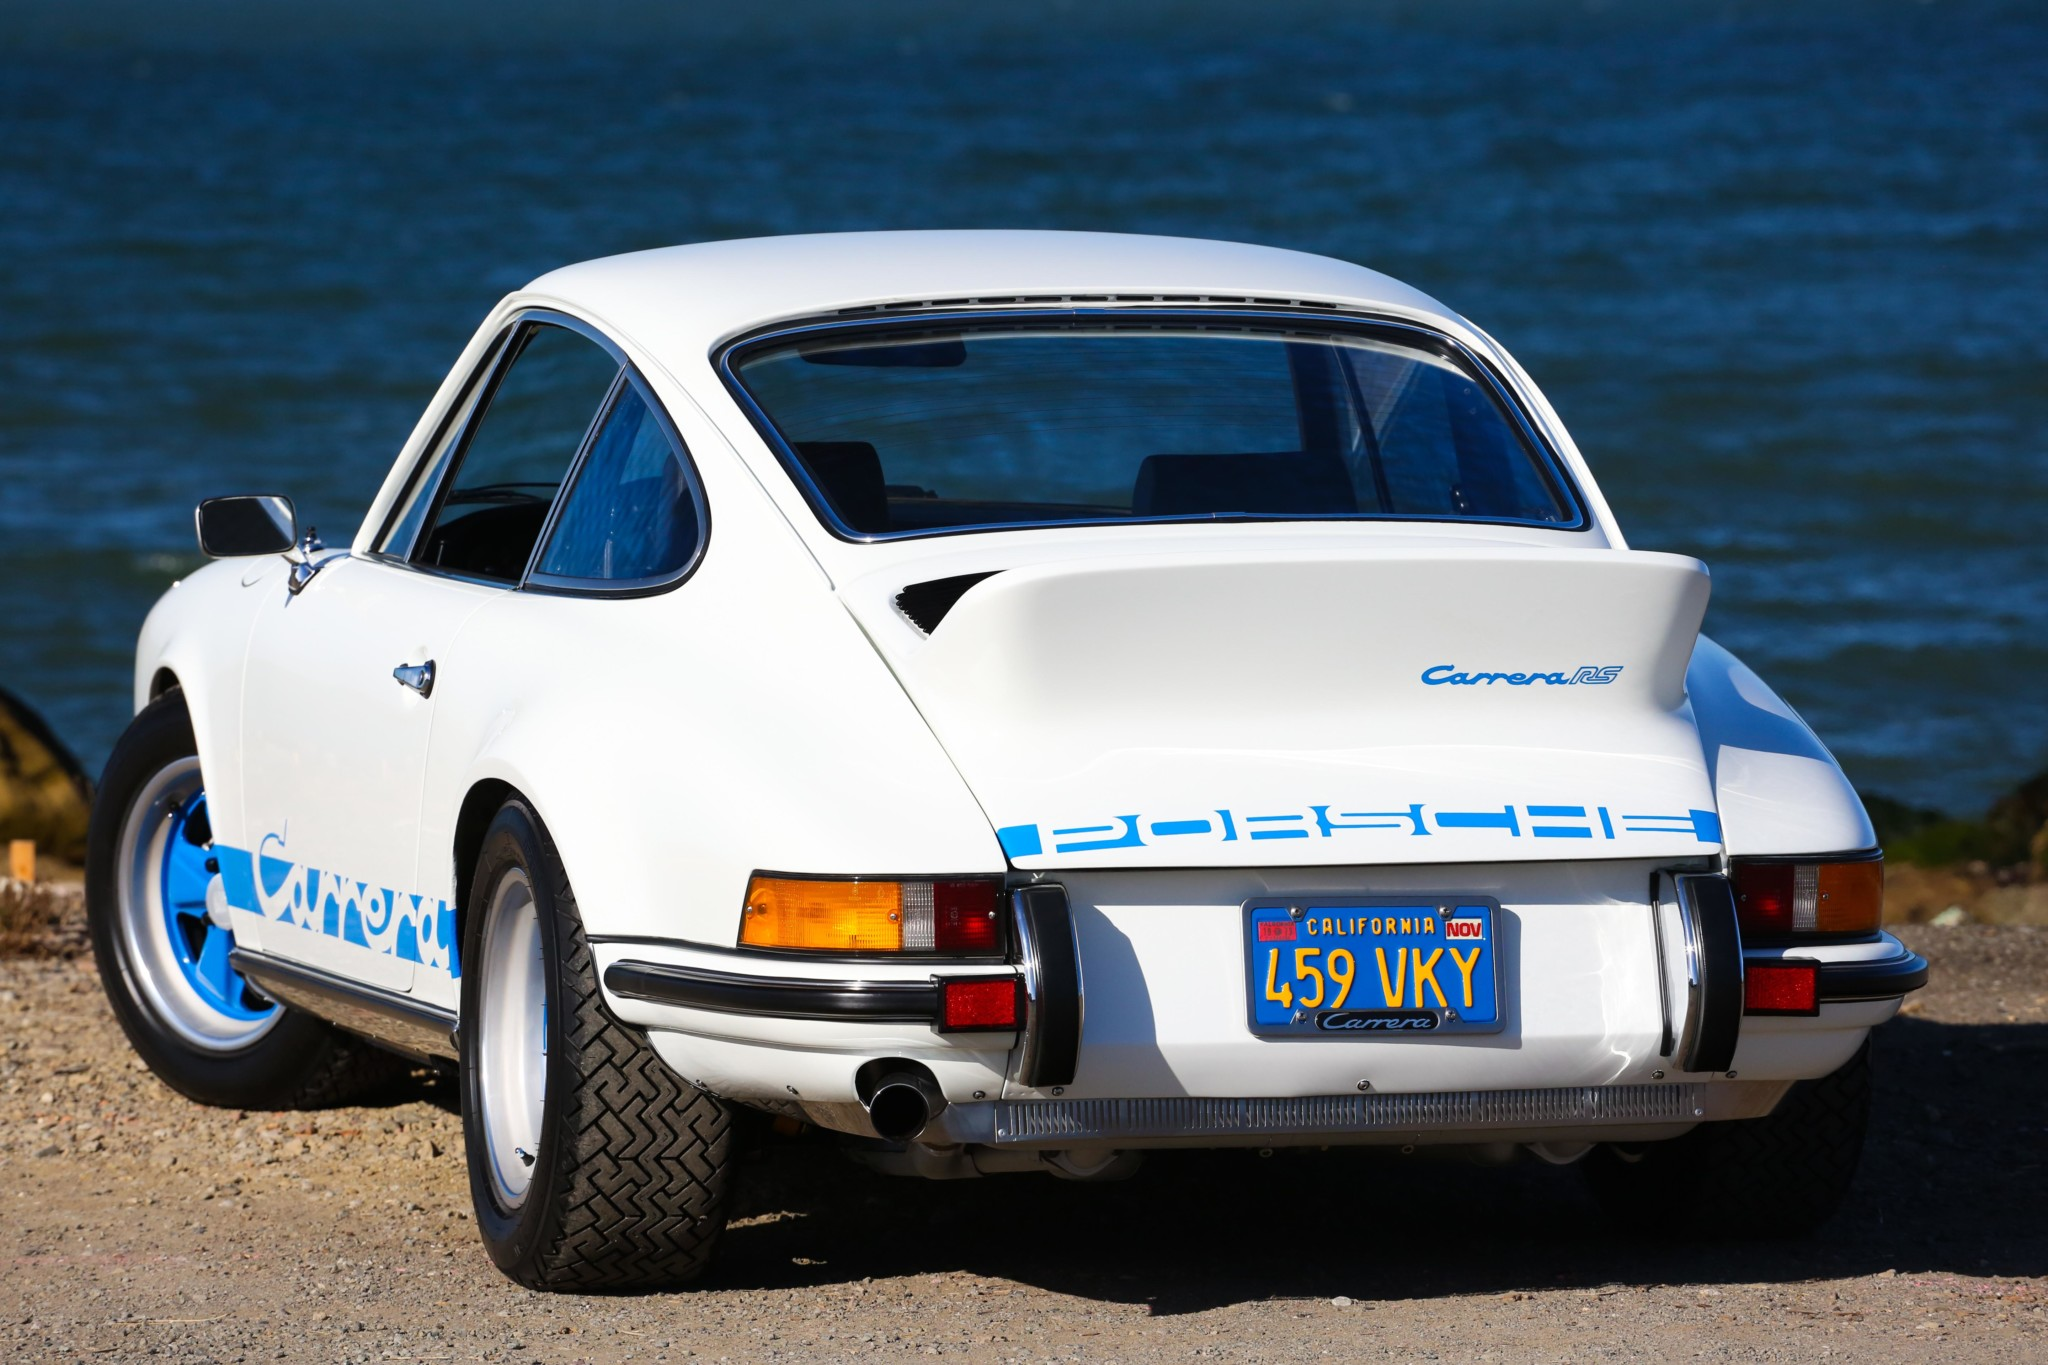 Porsche-911-Carrera-RS-2.7-1973-for-sale-24